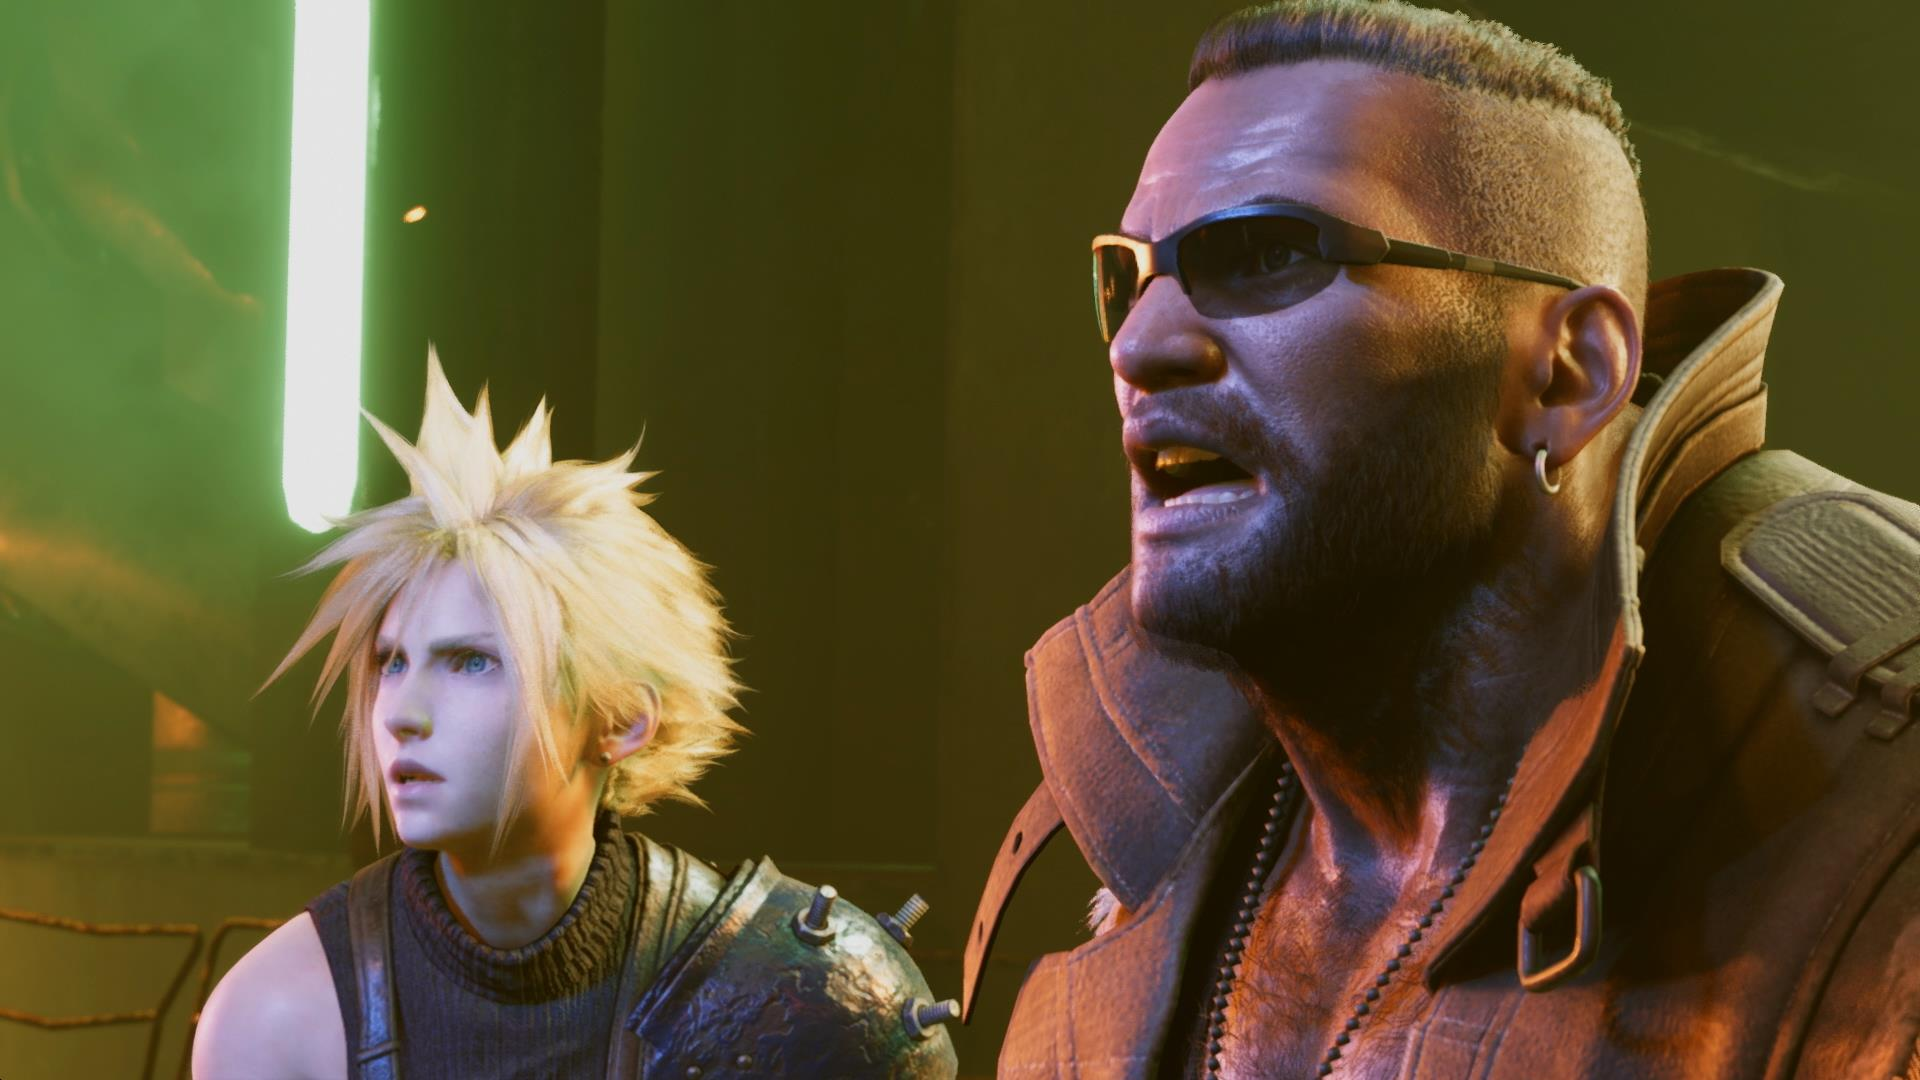 Square Enix isn't going all in on next-gen exclusive games yet, will take it slowly screenshot